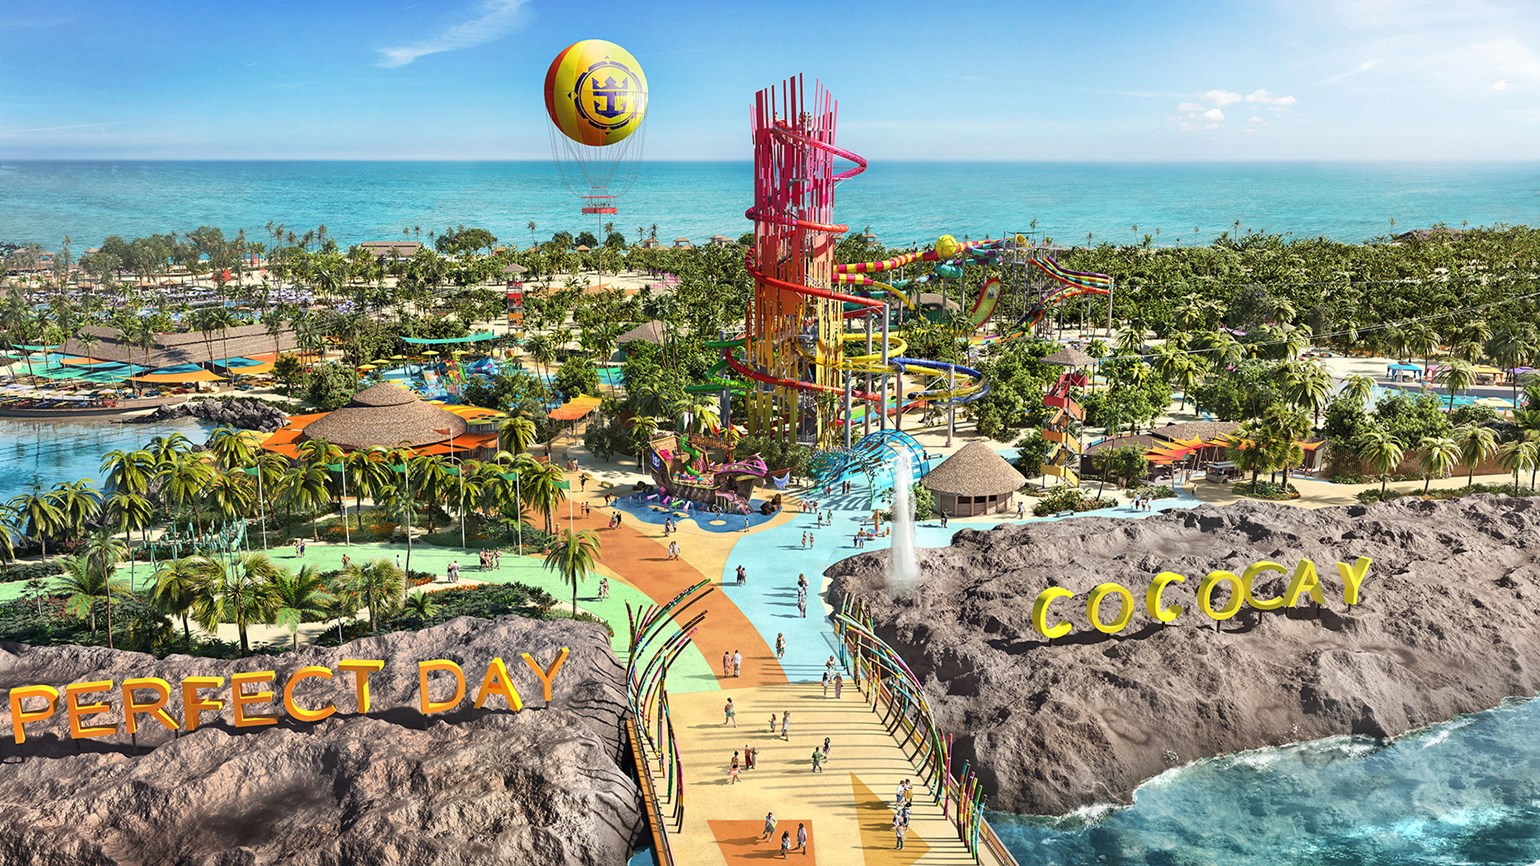 Perfect day of Coco Cay